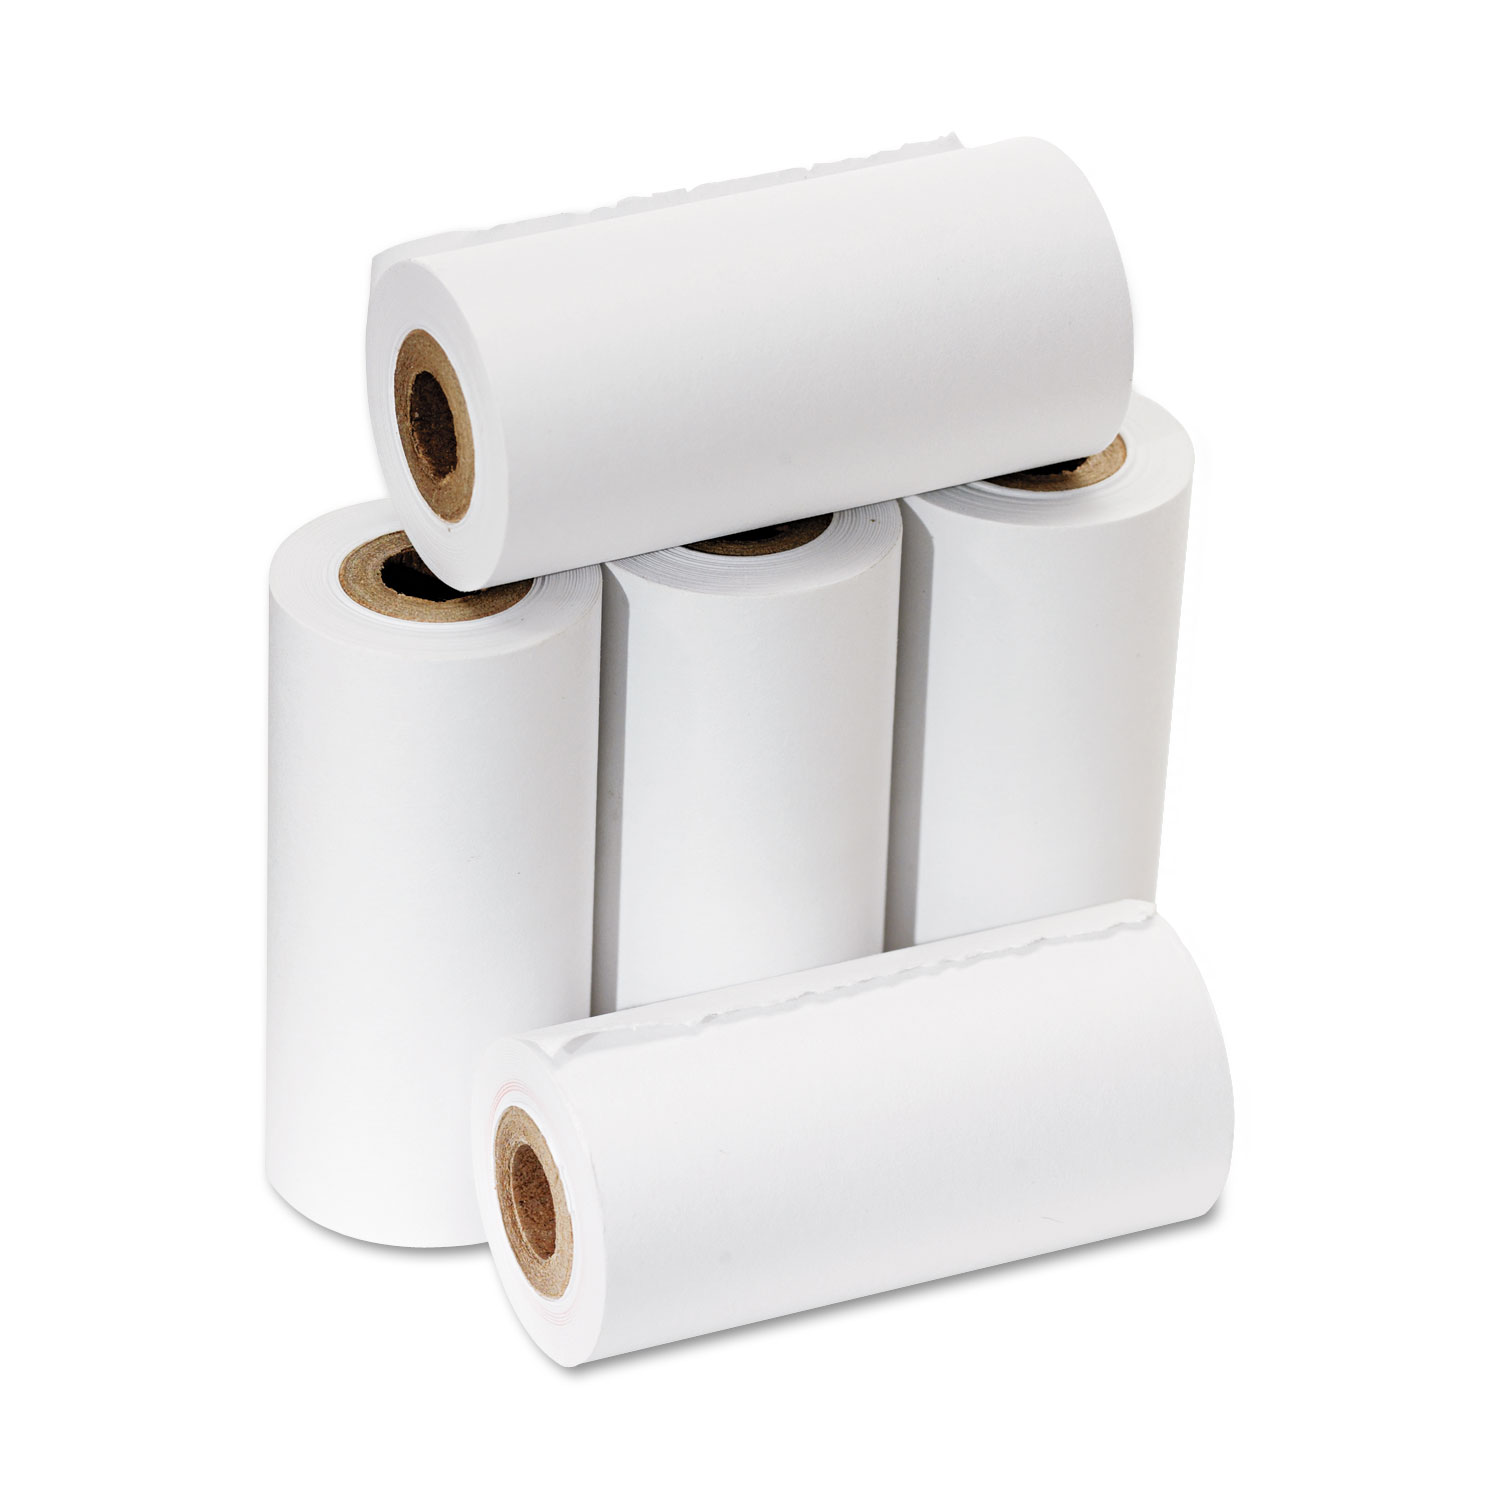 One Ply Adding Machine/Calculator Rolls, 2 1/4 x 17 ft, White, 5/Pack